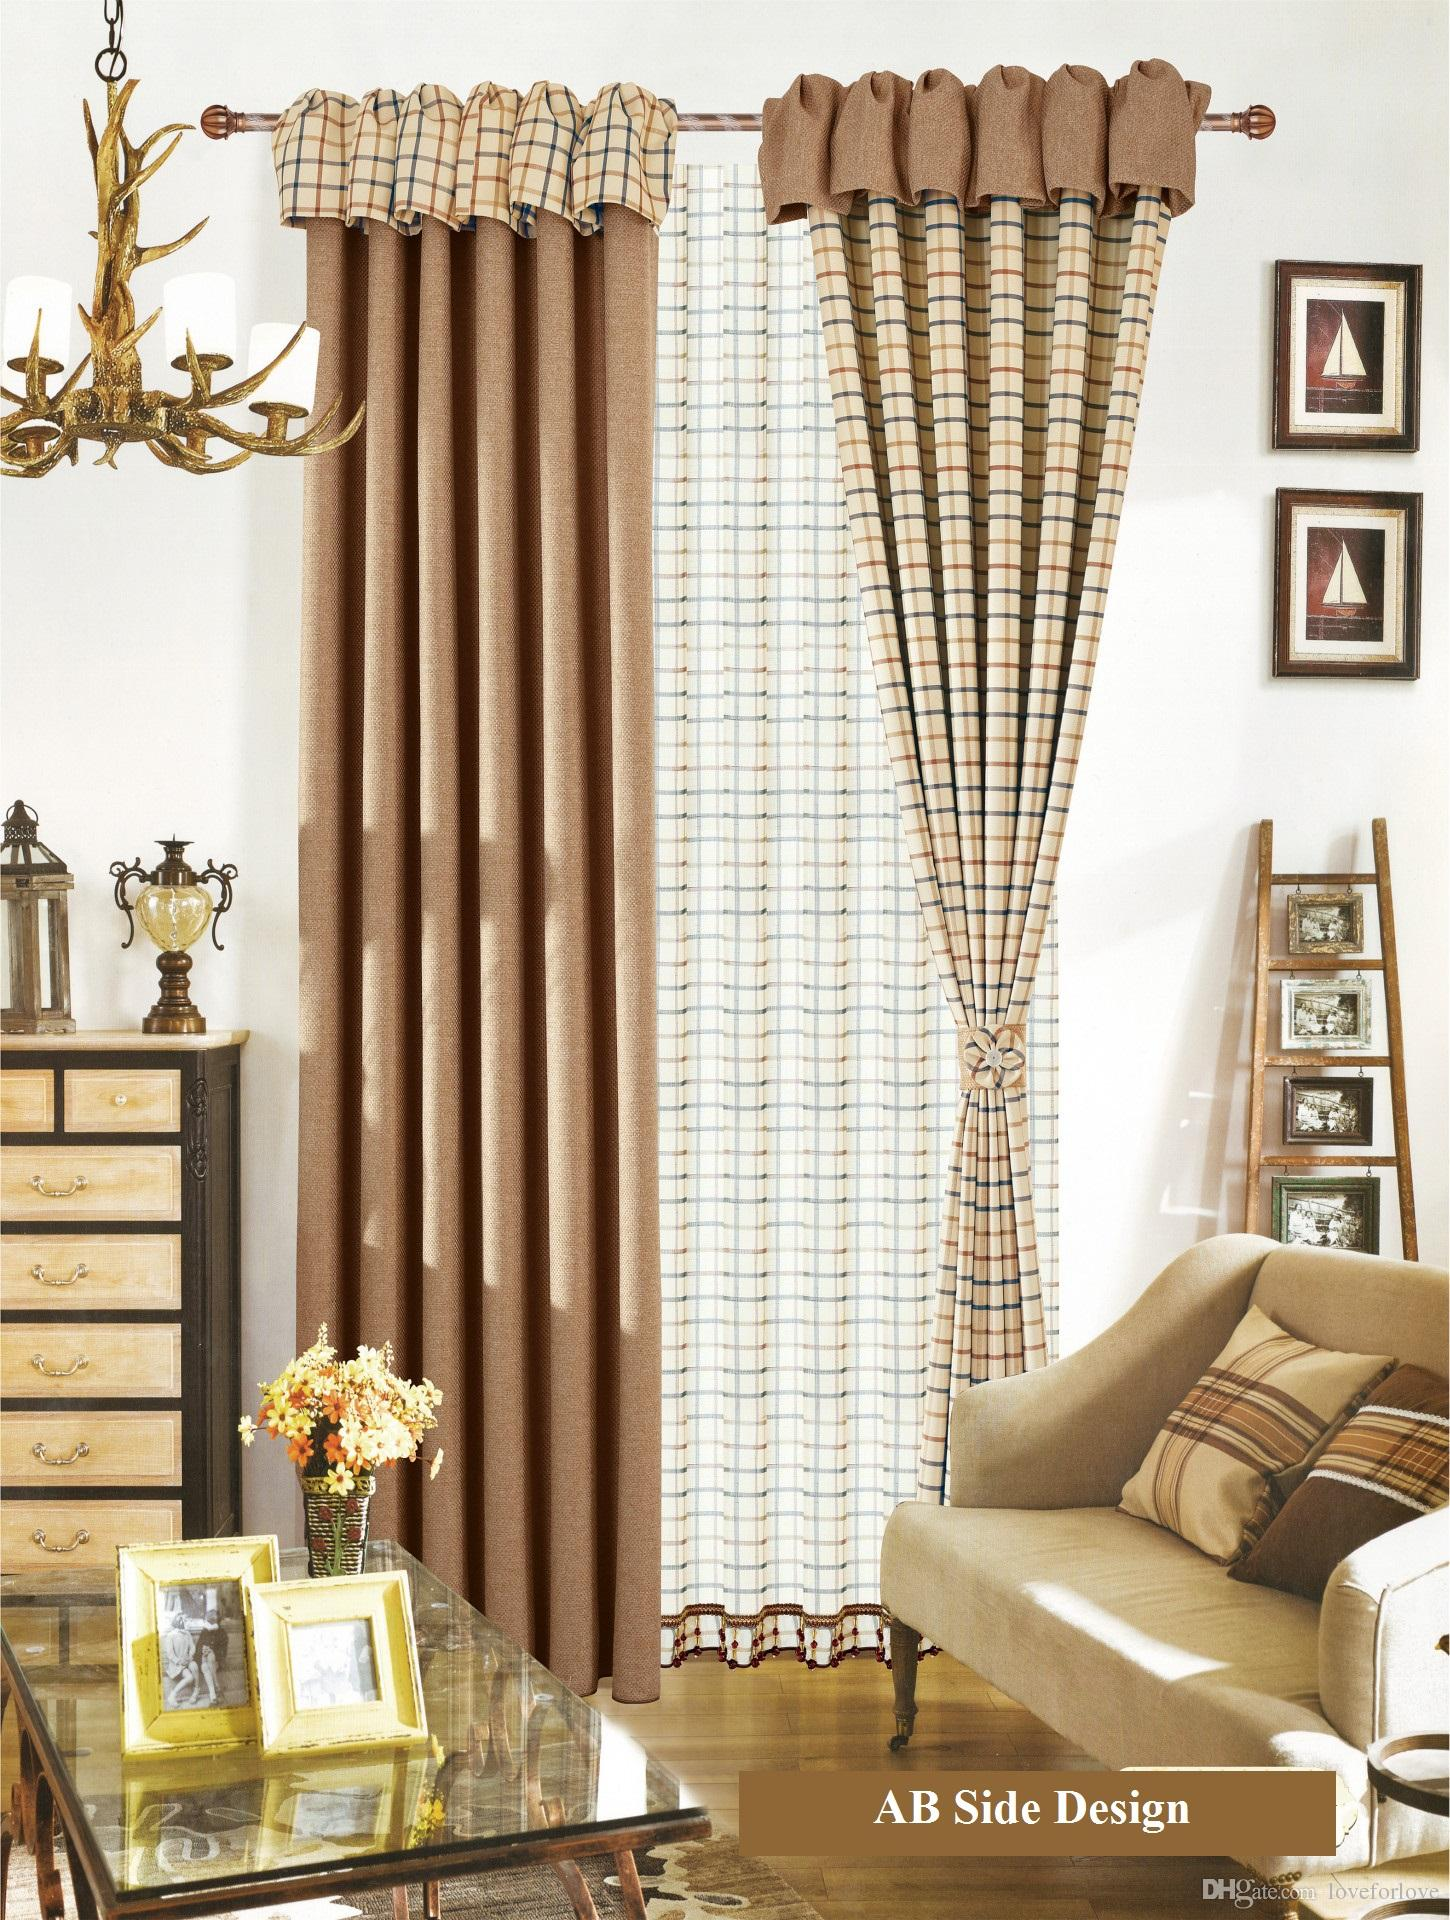 Curtains designs 2016 for living room - See Larger Image